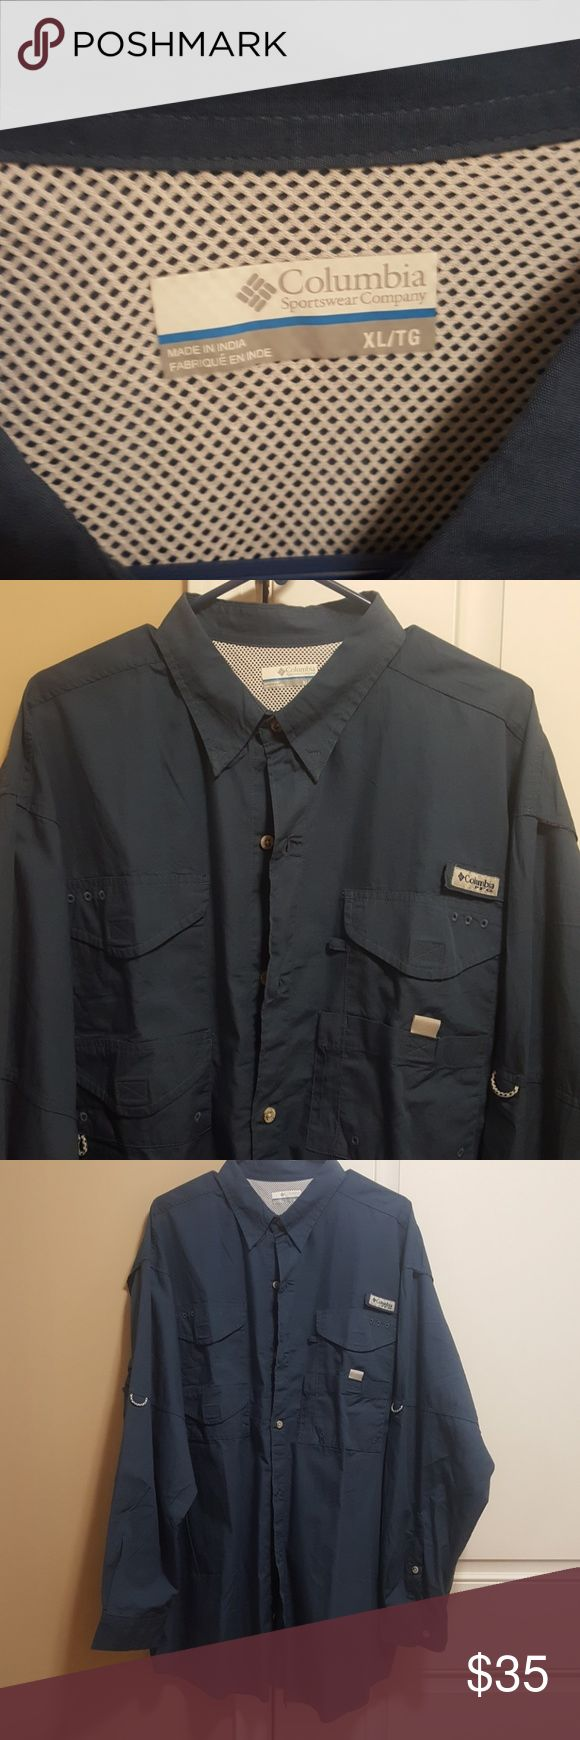 Columbia long sleeve PFG shirt Worn once like new Columbia PFG shirt Size XL. Please make offers you never know. Columbia Shirts Casual Button Down Shirts